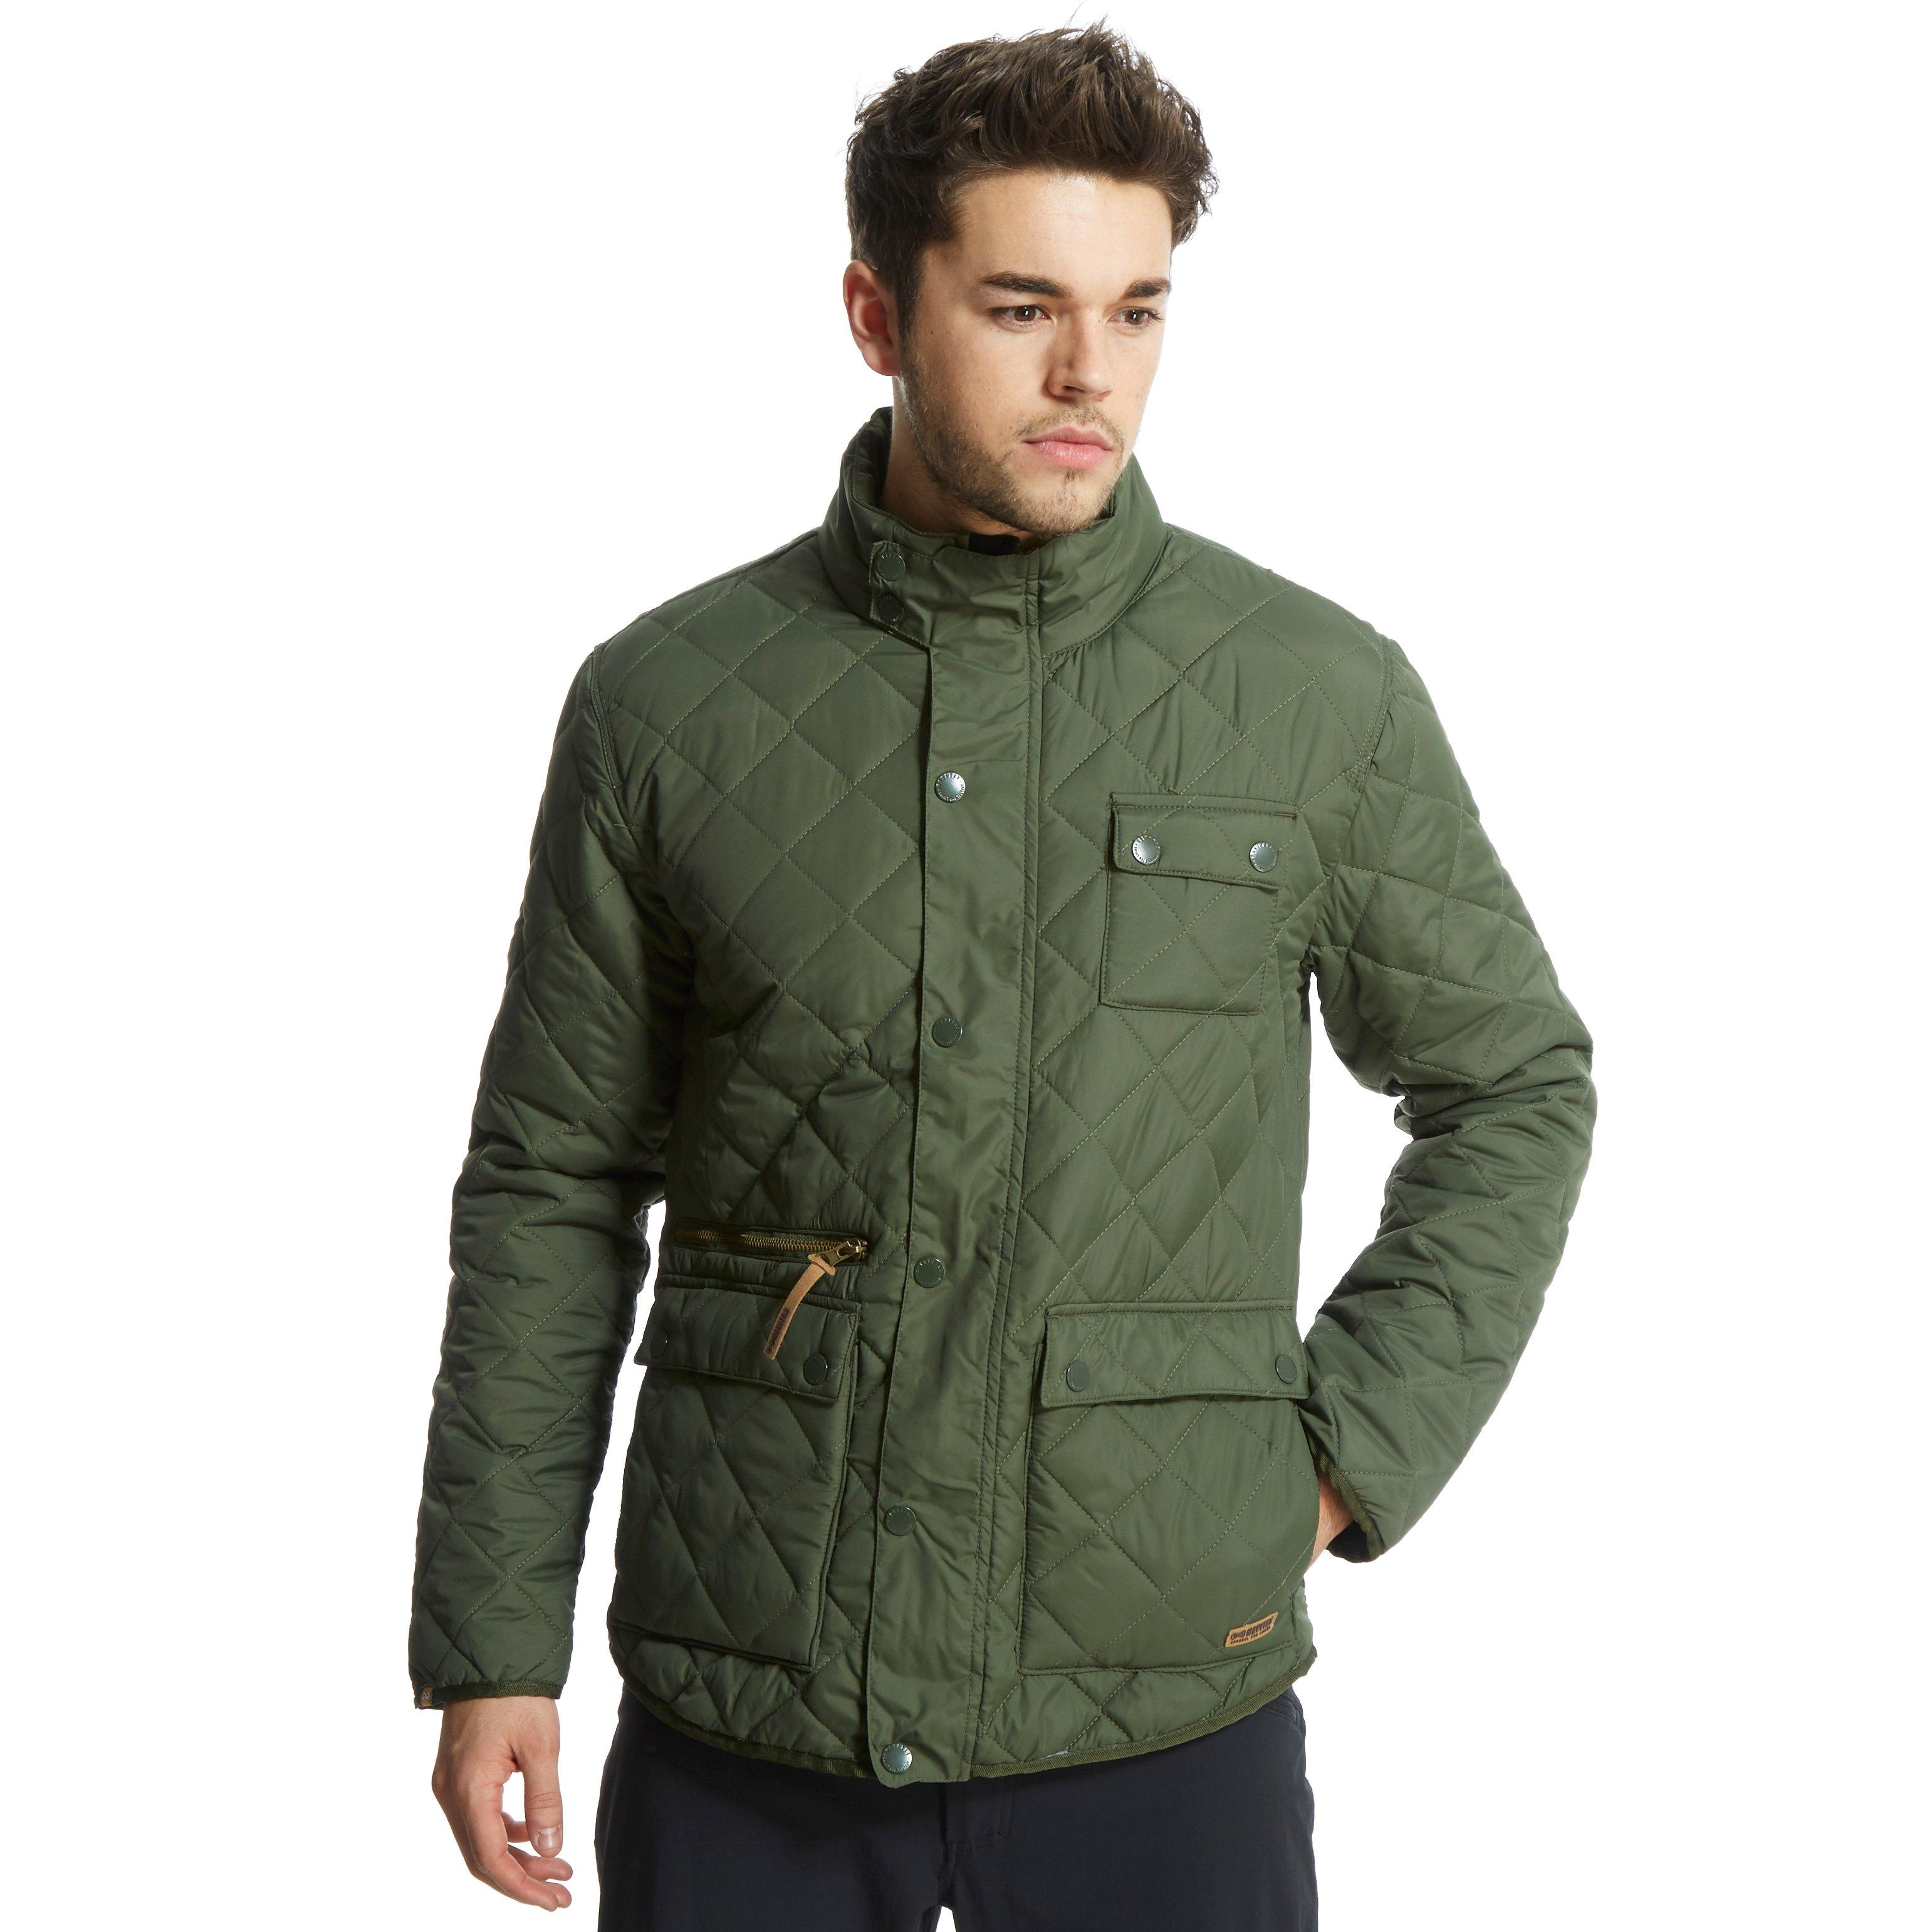 General Clothing